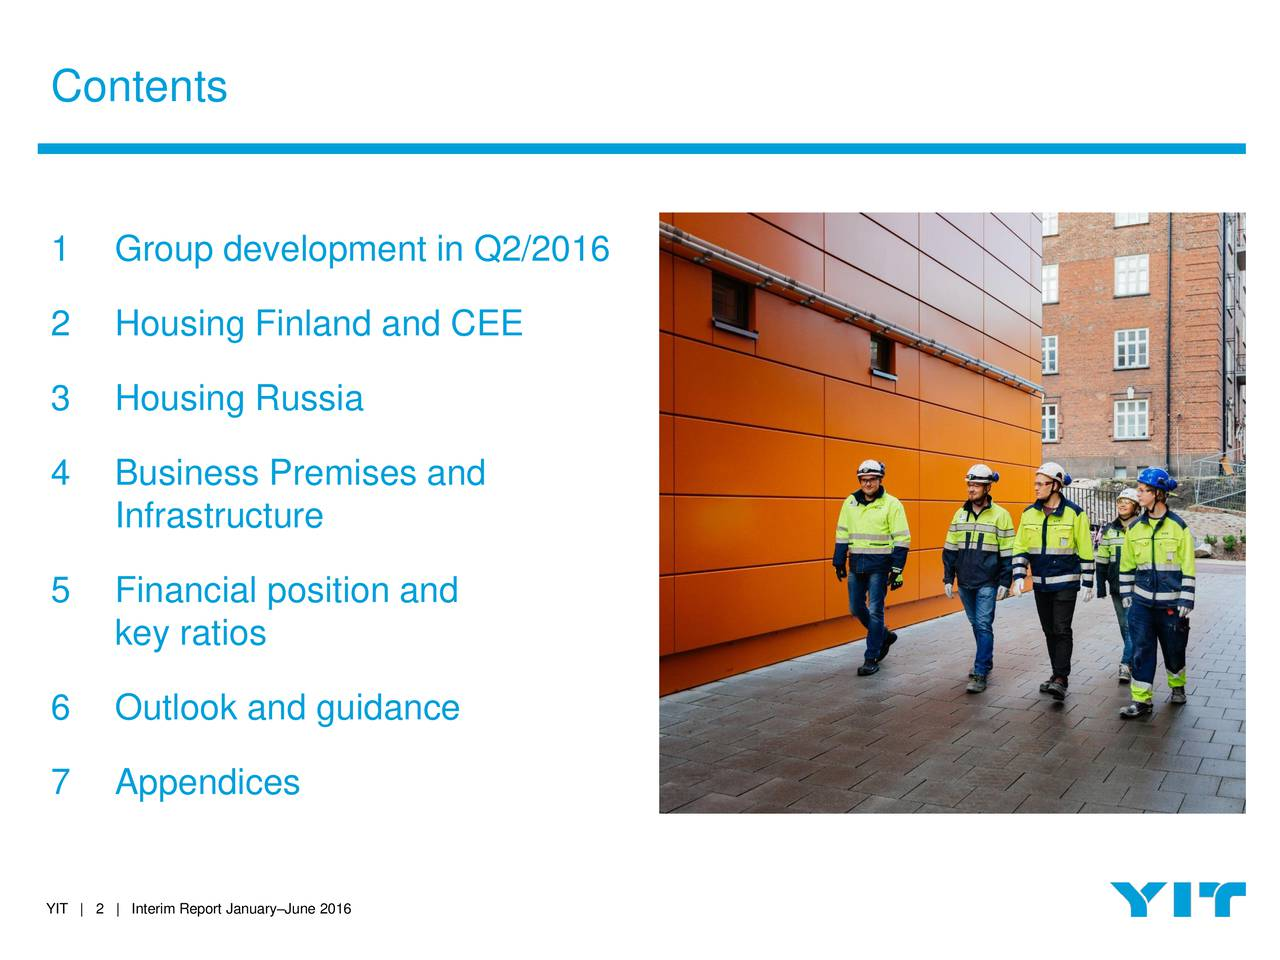 1 Group development in Q2/2016 2 Housing Finland and CEE 3 Housing Russia 4 Business Premises and Infrastructure 5 Financial position and key ratios 6 Outlook and guidance 7 Appendices YIT   2   Interim Report JanuaryJune 2016